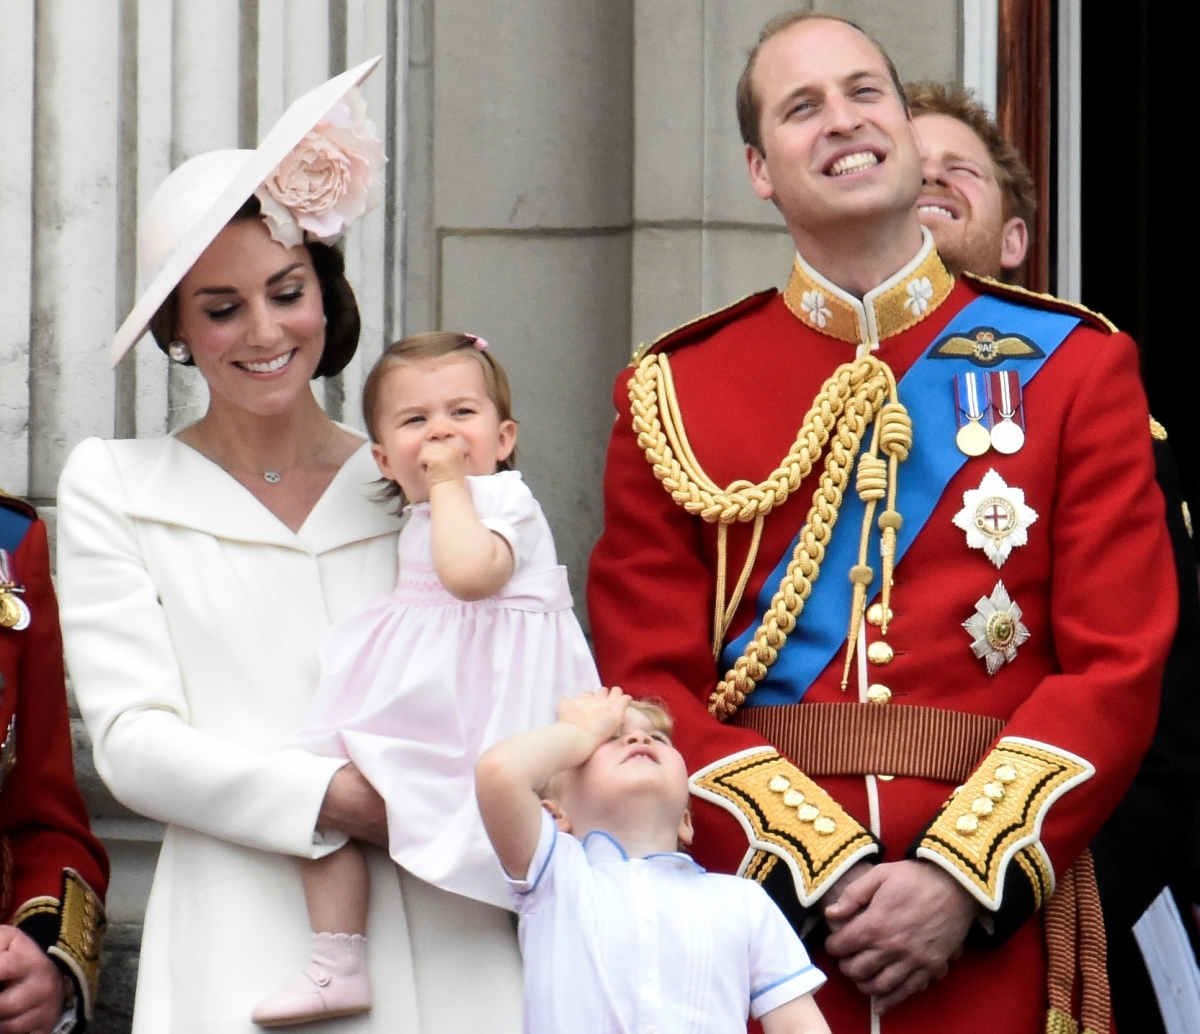 Kate Middleton To Go On Royal Tour With Prince William